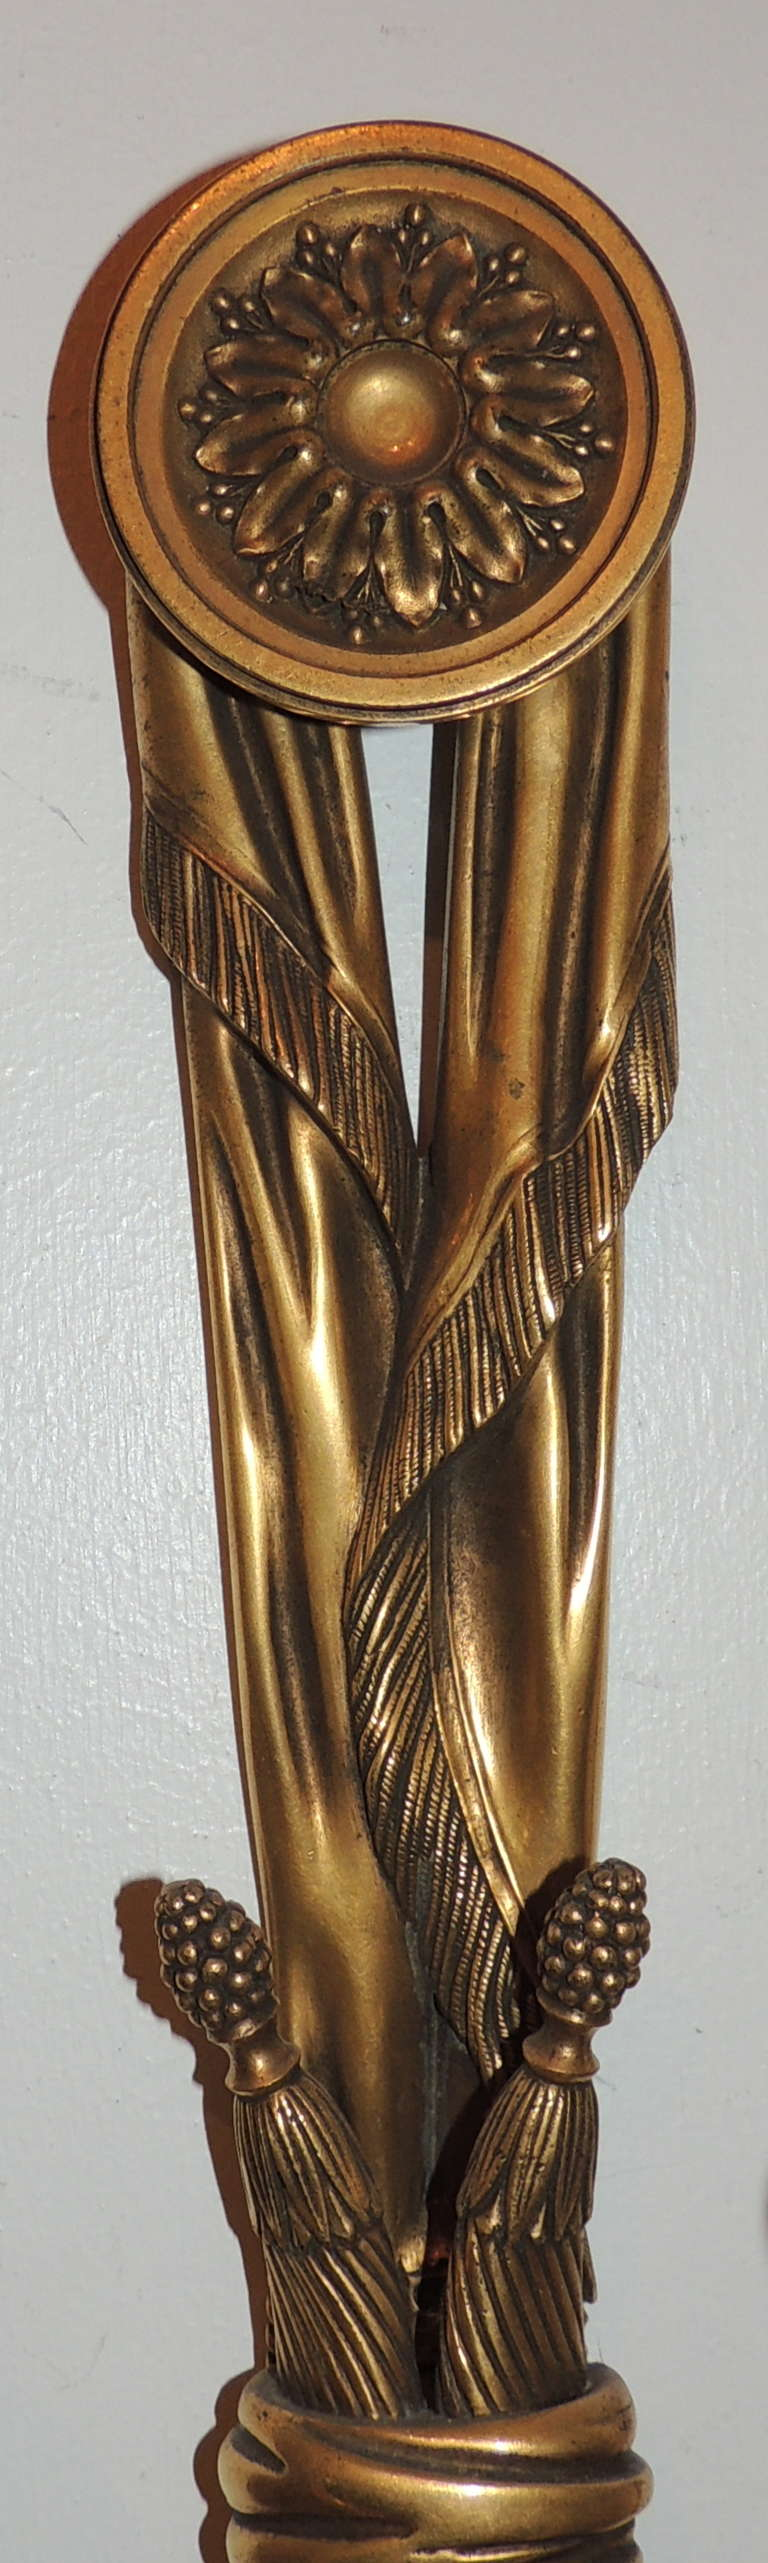 American Very Fine Pair E.F. Caldwell Gilt Bronze, Tassel Two-Light Neoclassical Sconces For Sale